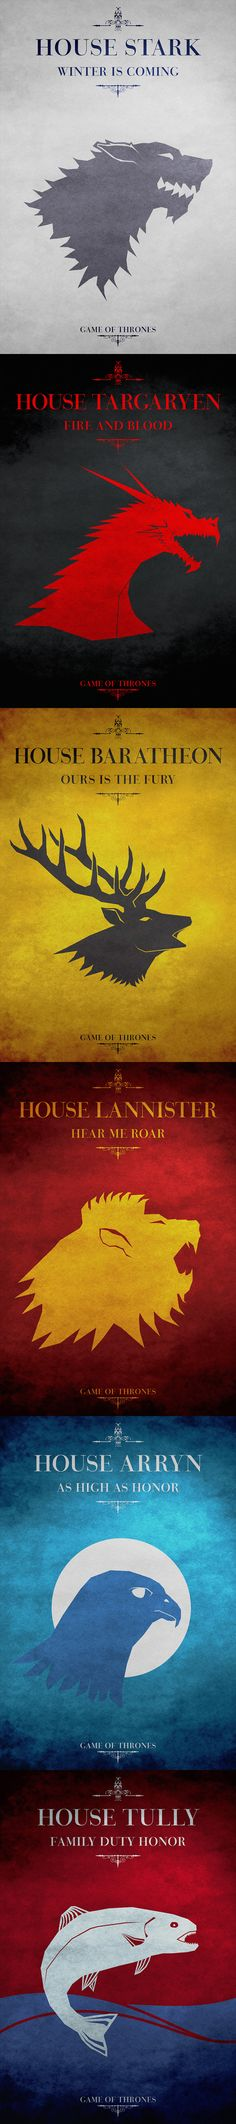 Game of Thrones by Guillaume Bachelier, via Behance